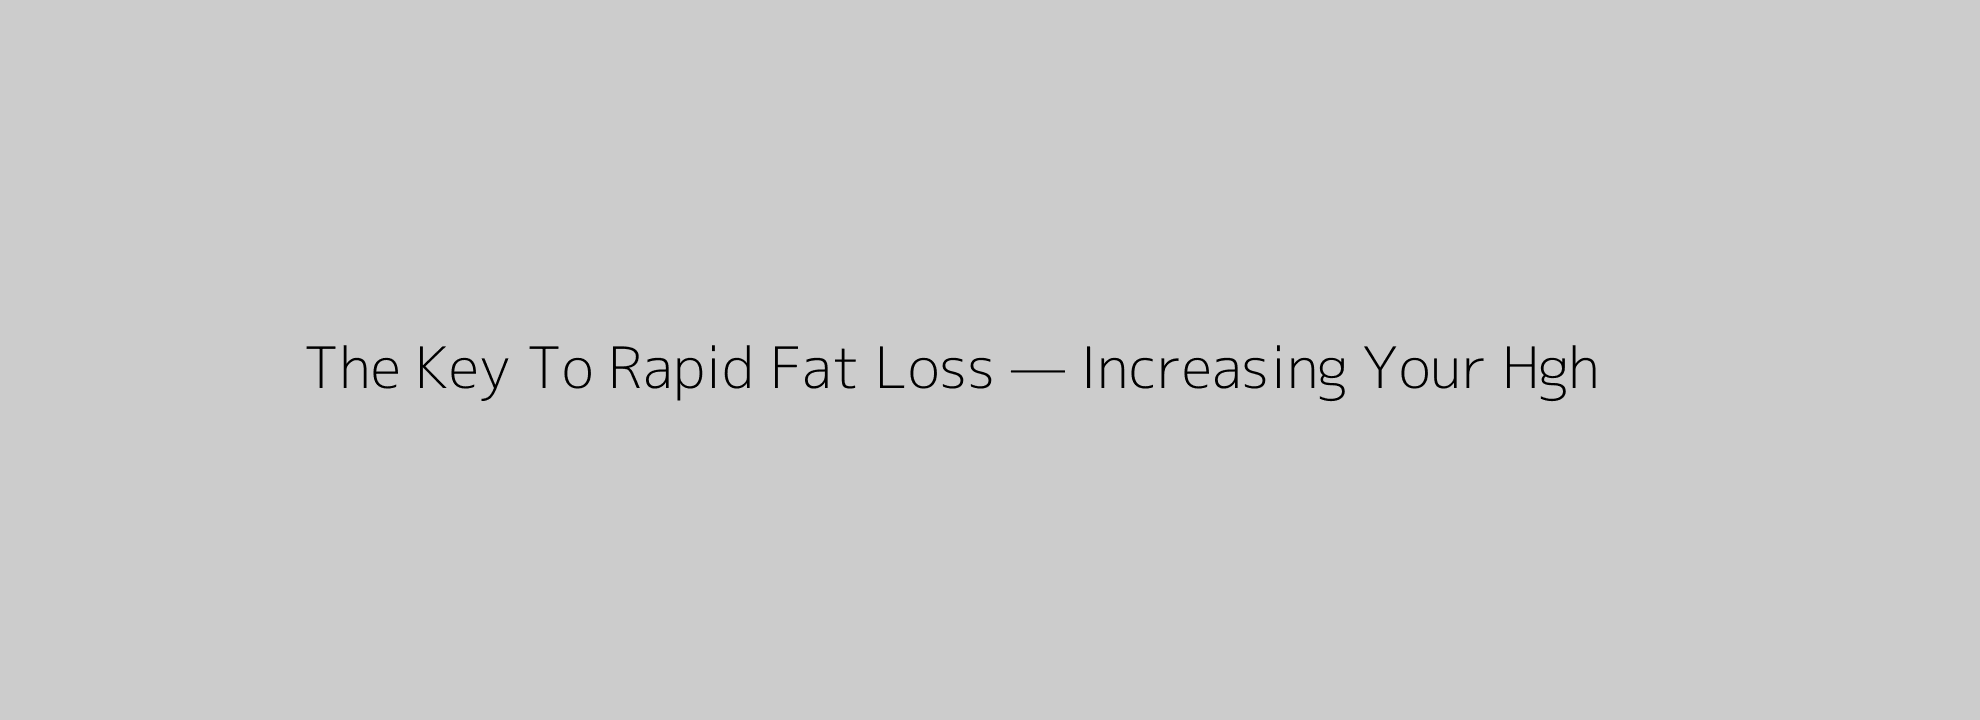 The Key To Rapid Fat Loss — Increasing Your Hgh